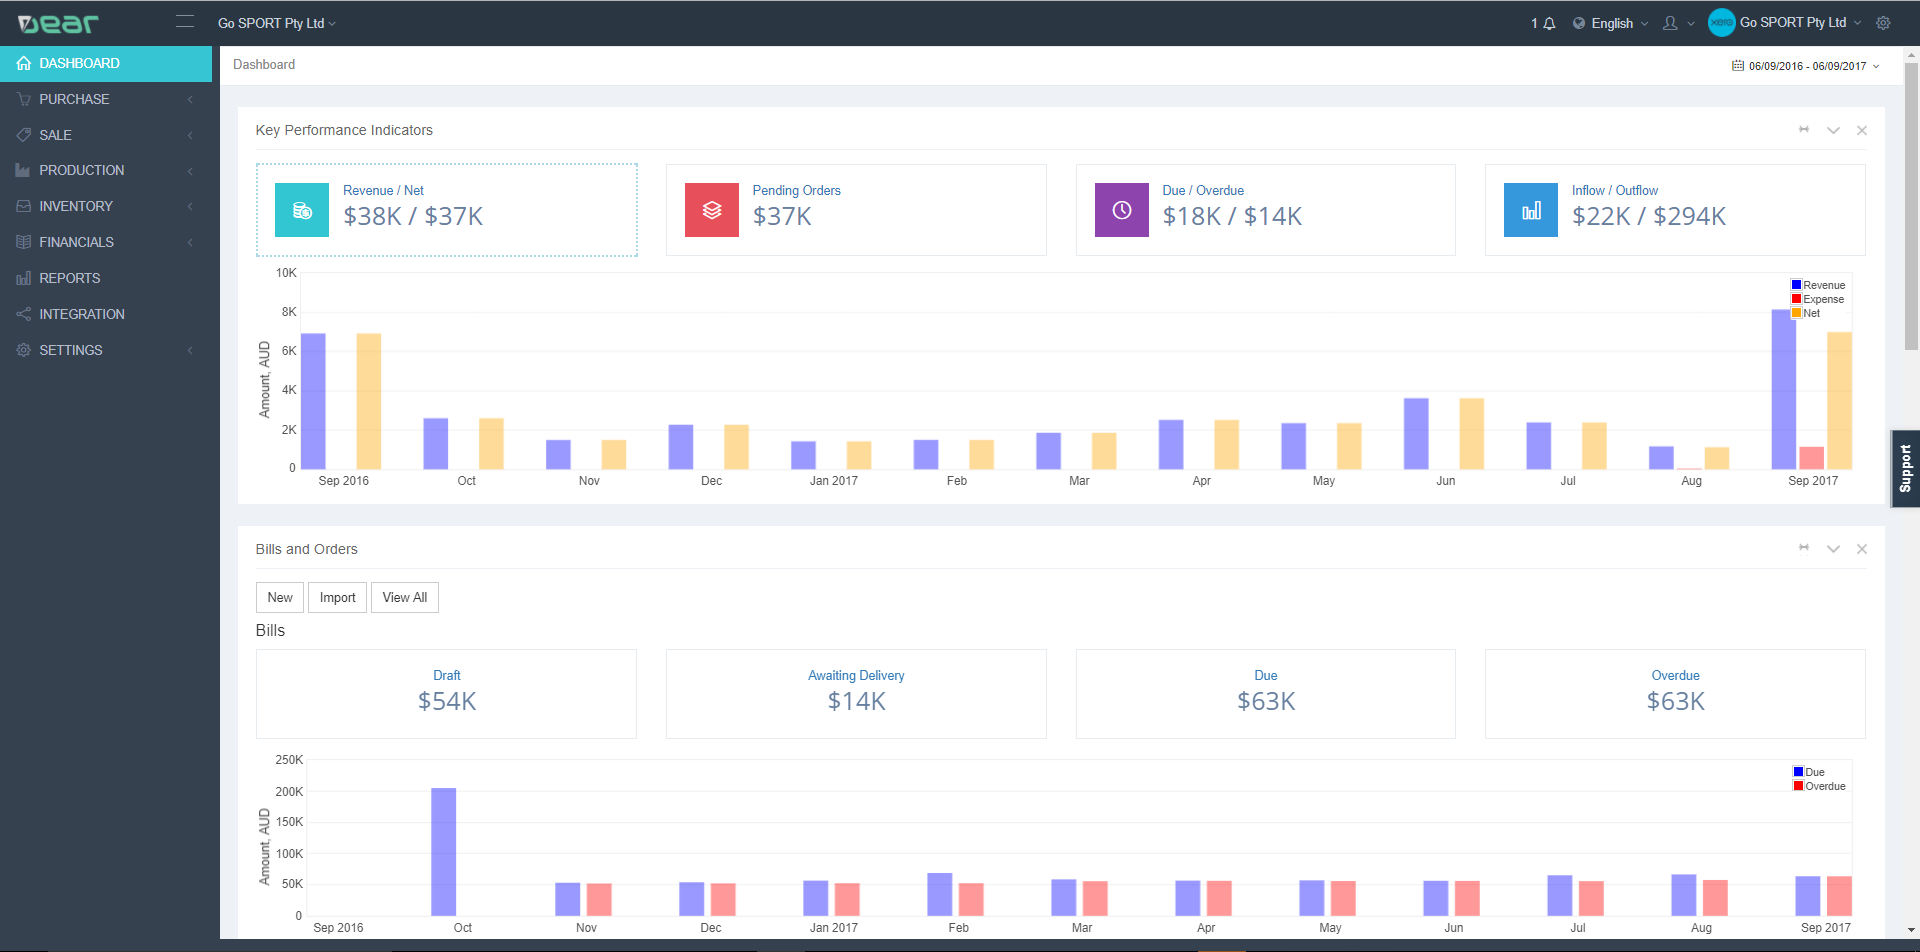 The DEAR Inventory dashboard gives an overview of a business's product activity